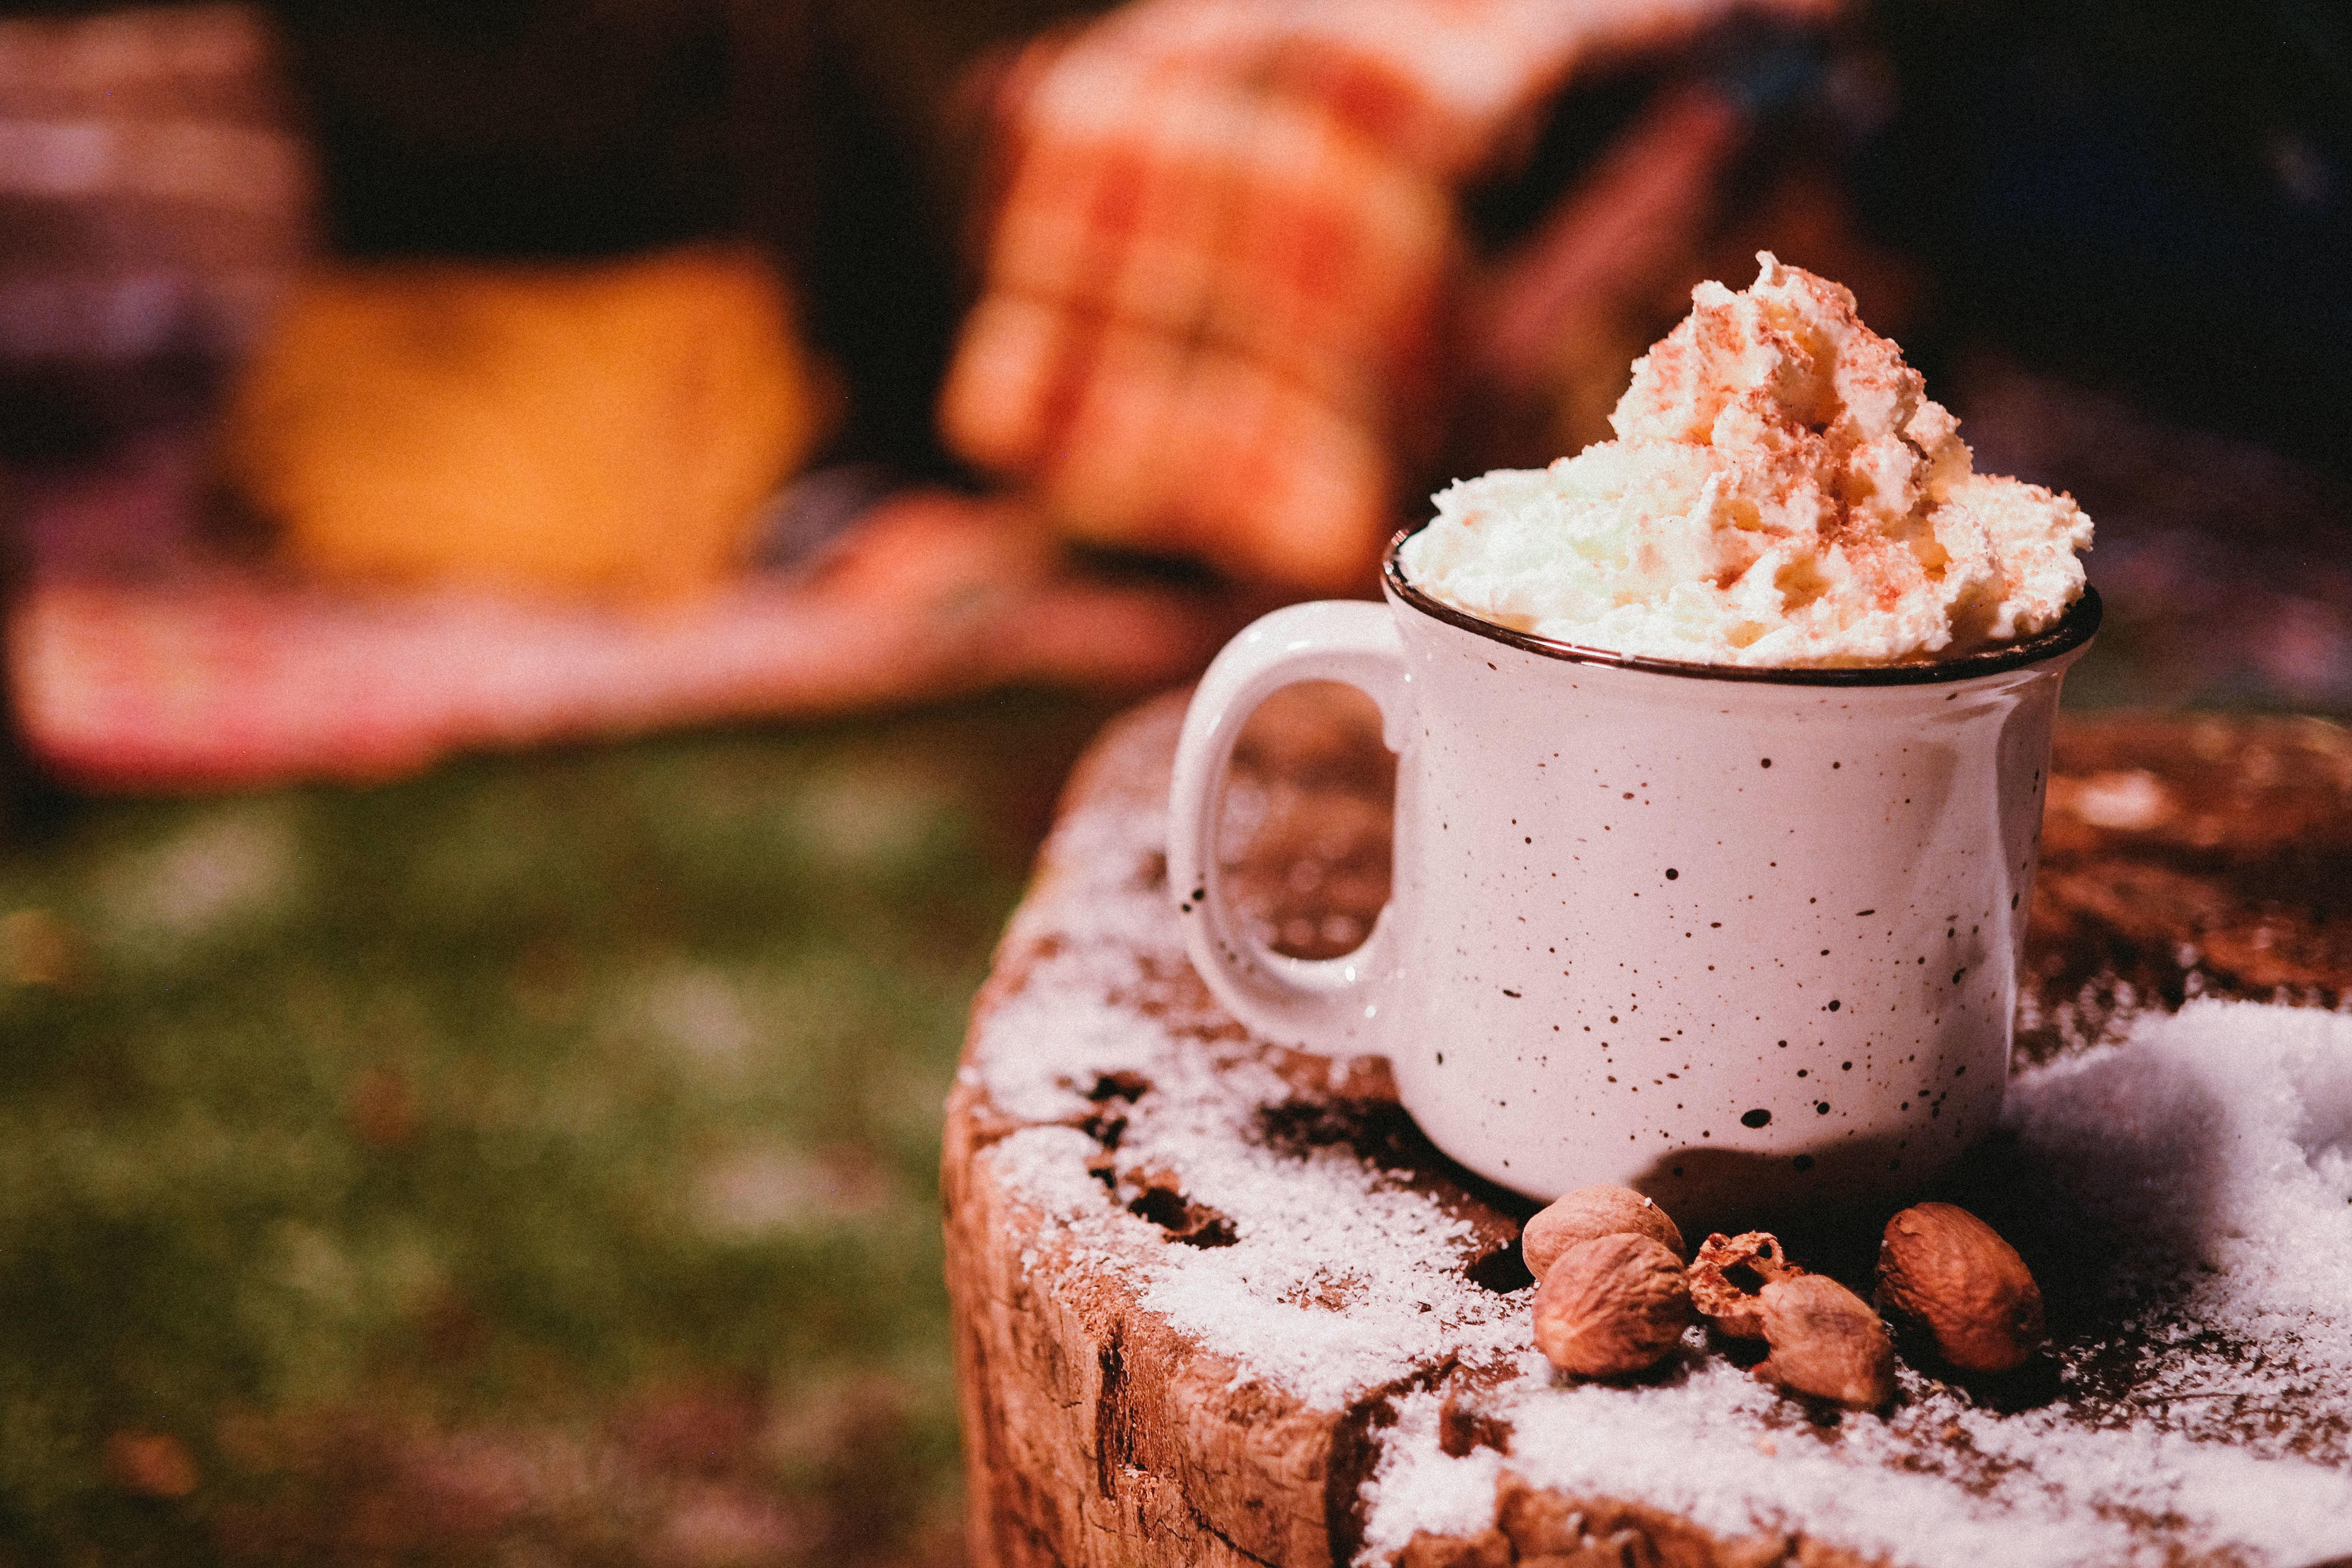 Cocktail in a mug topped with whipped cream sitting on a tree stump